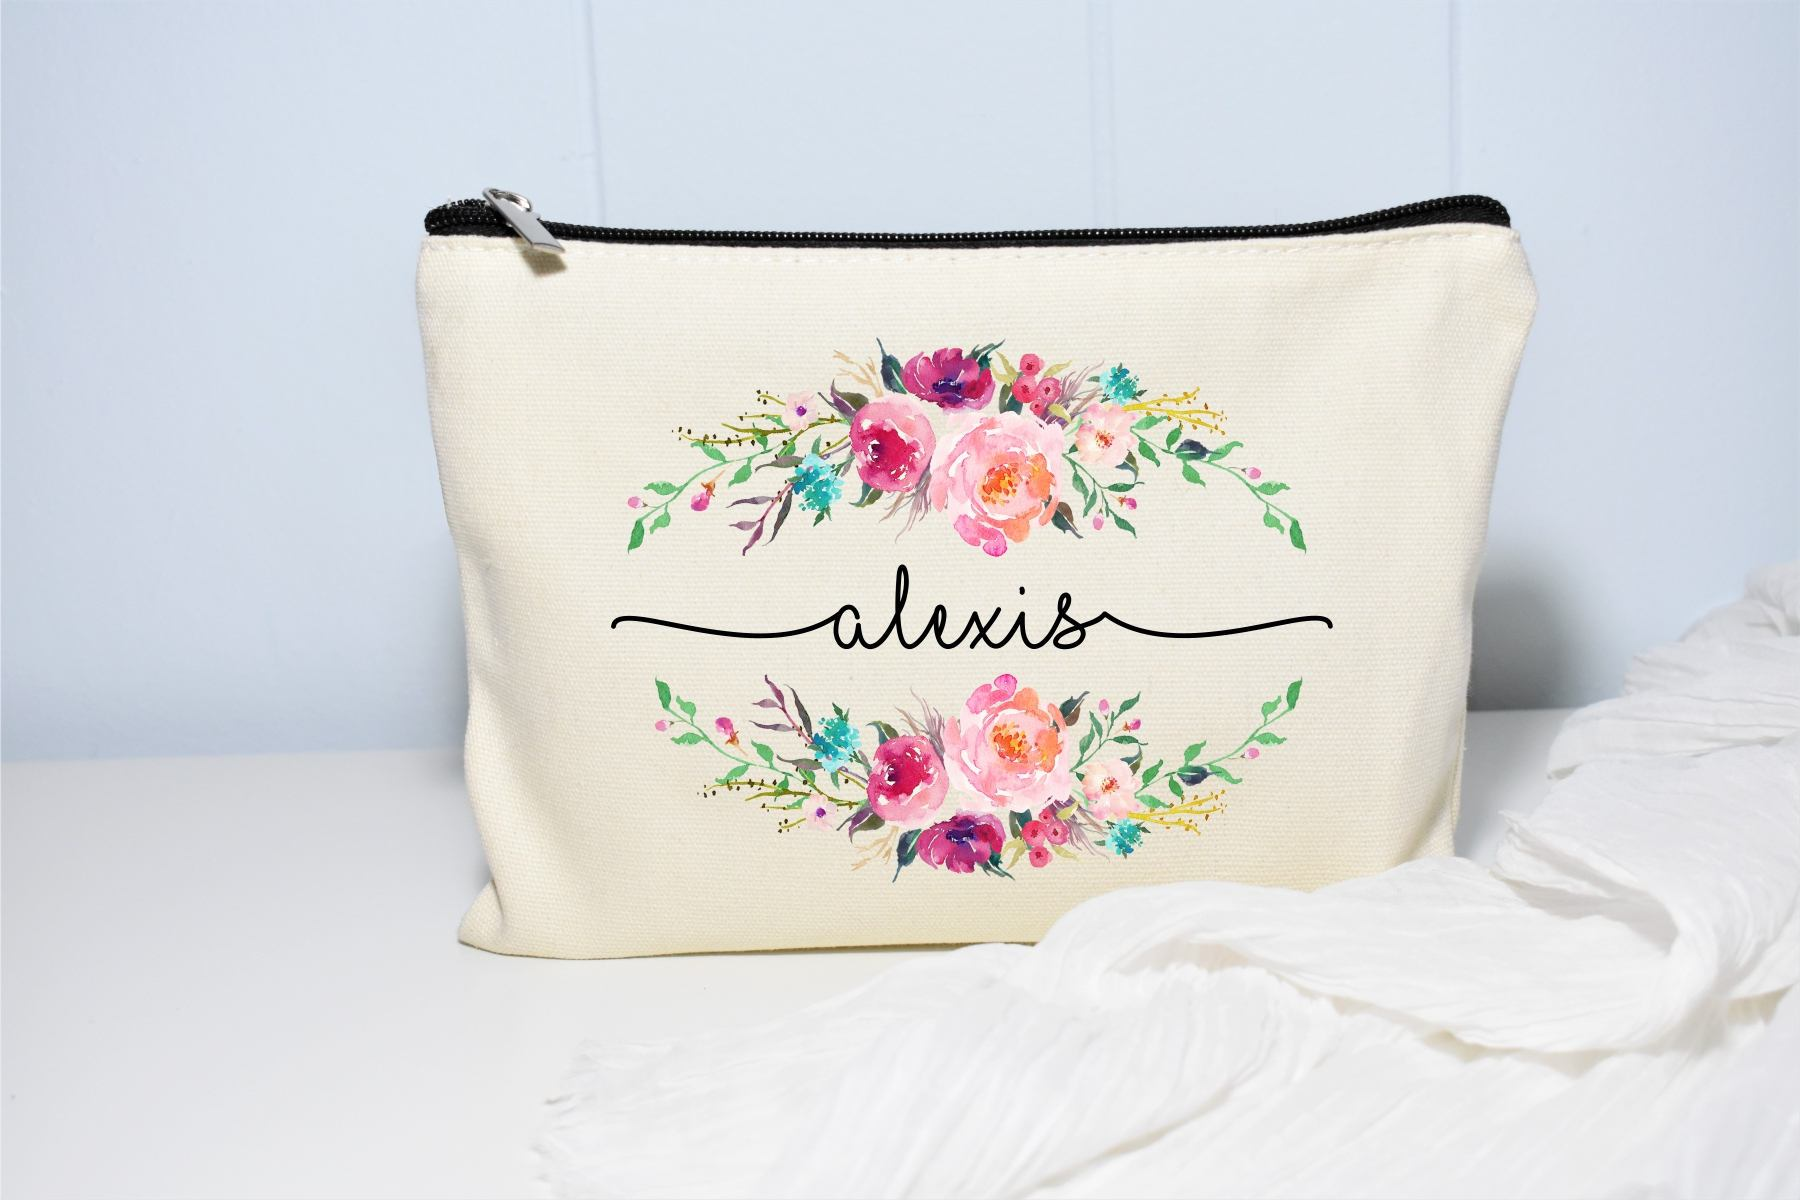 Personalized Makeup Bag Personalized Makeup Bags Gifts For Friends Canvas Makeup Bag